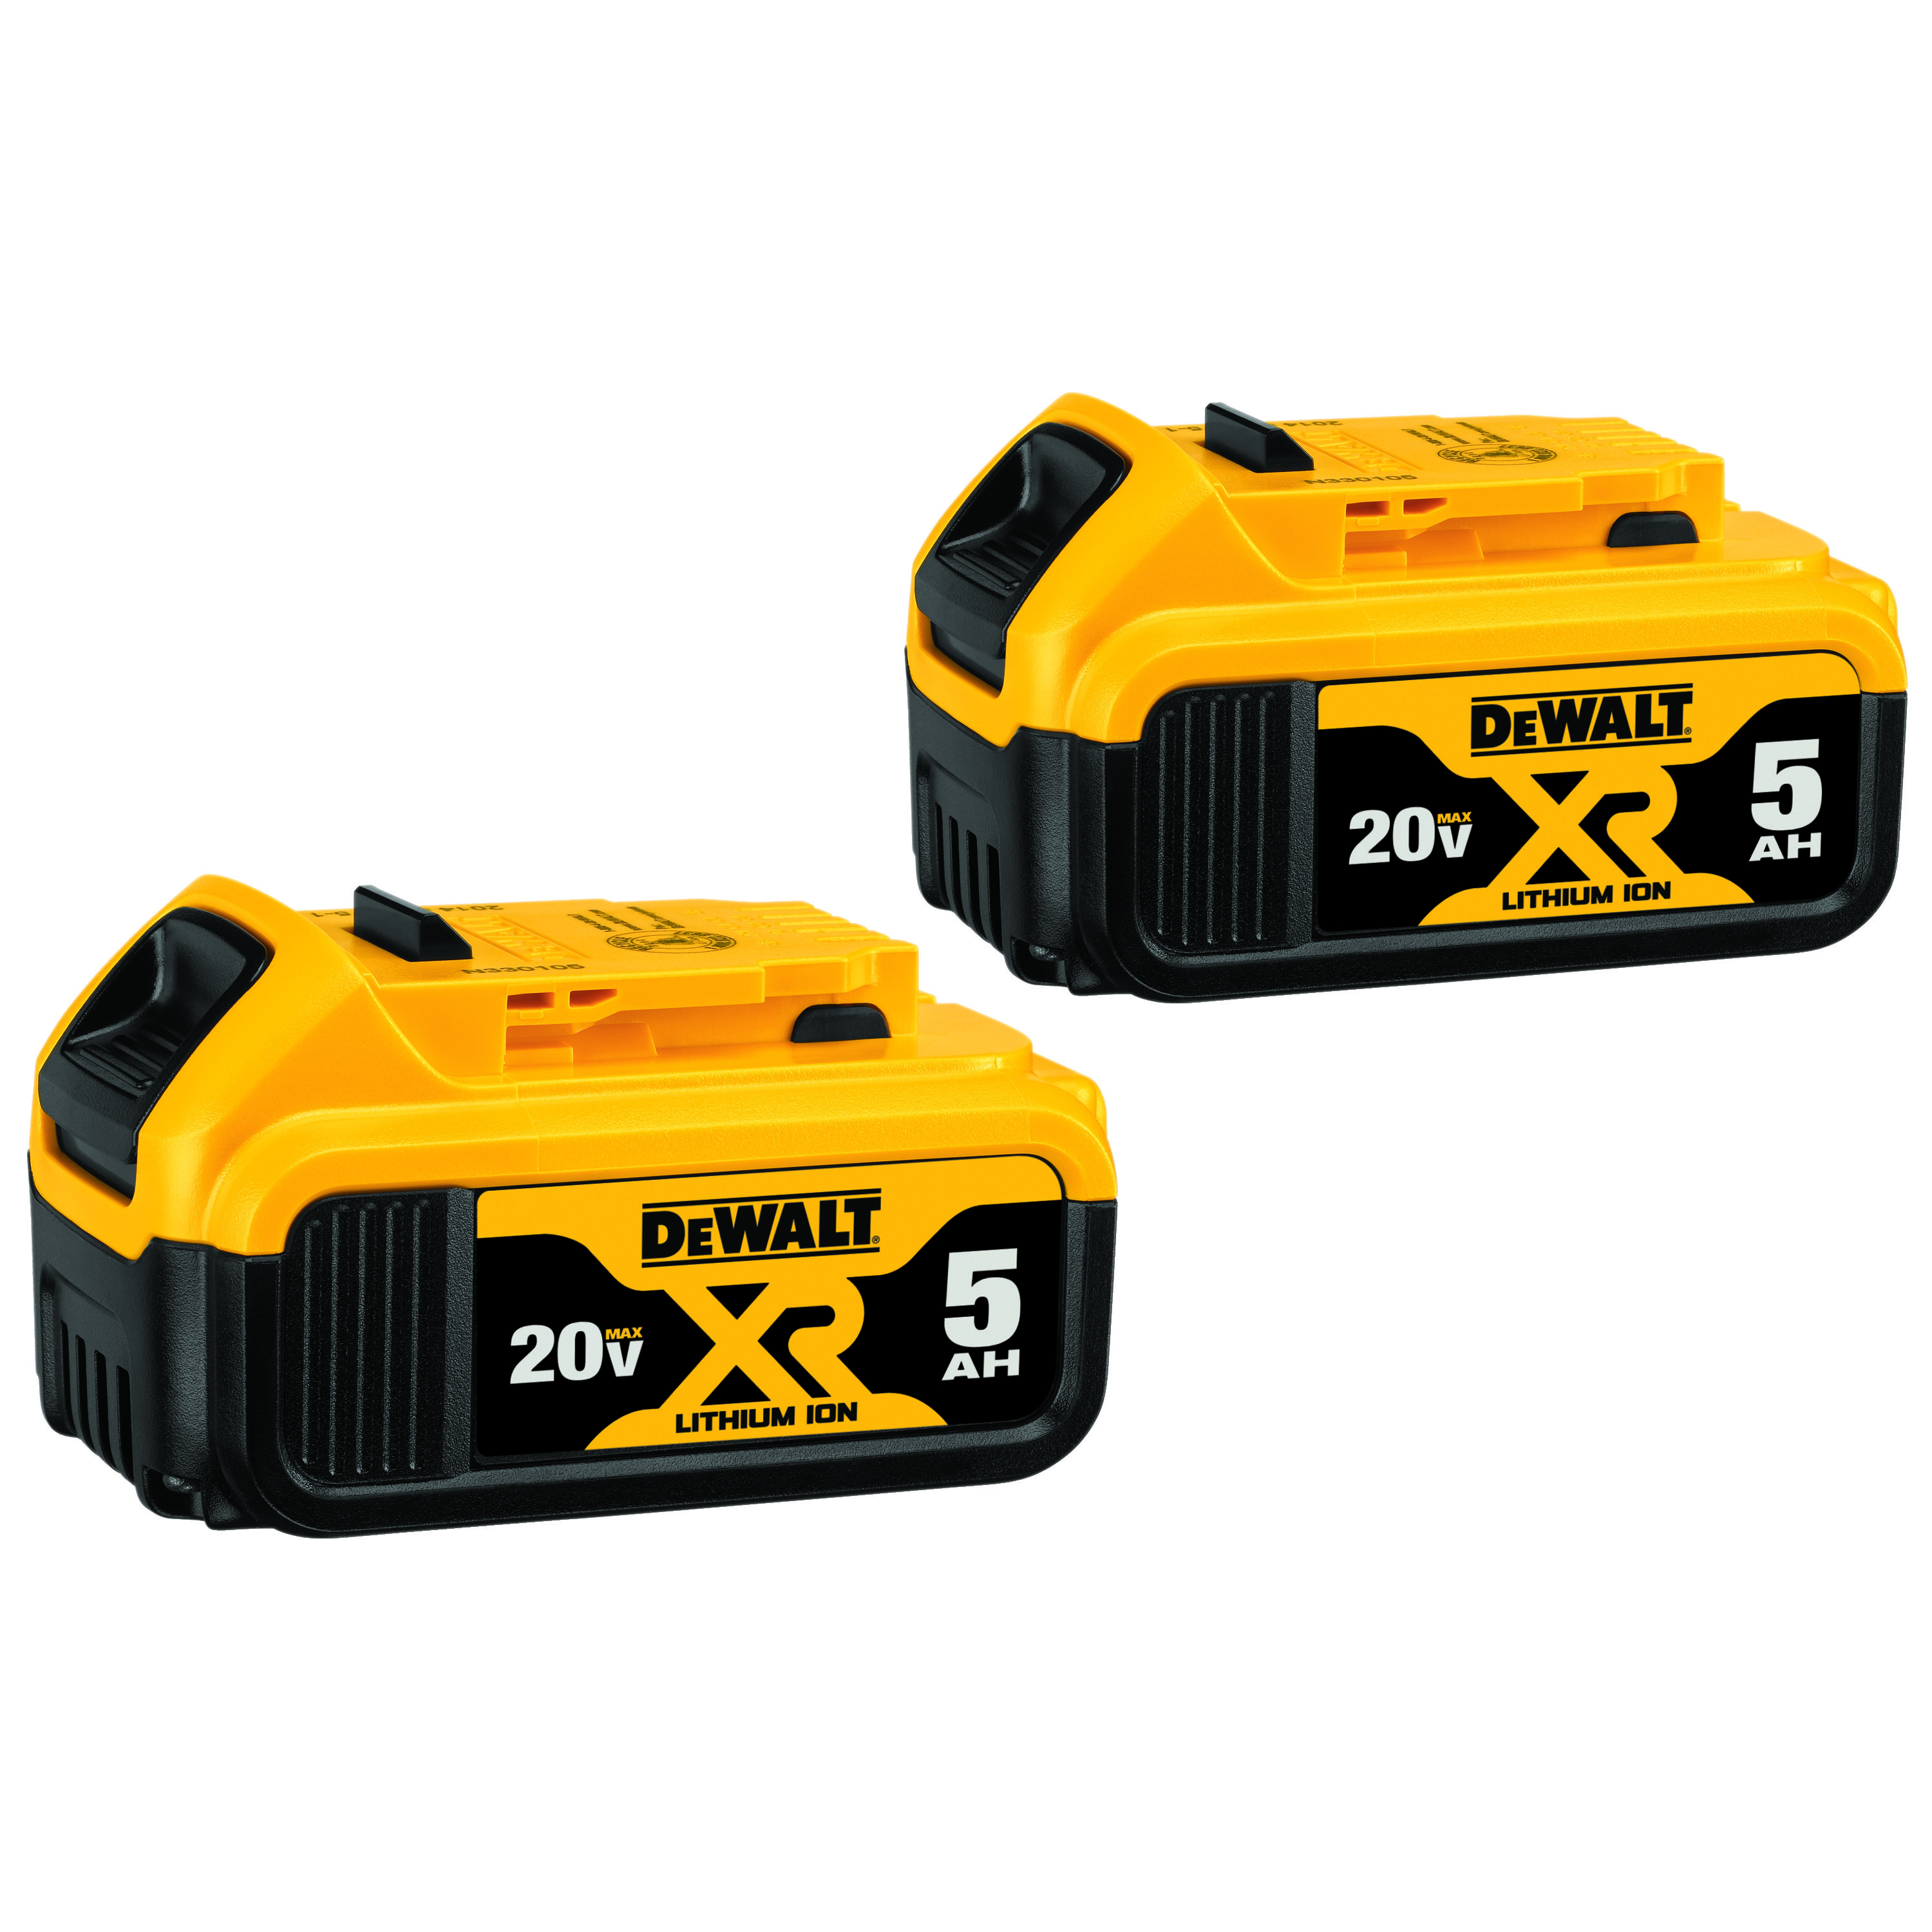 DeWALT® 20V MAX* DCB205-2 Premium Battery Pack, 5 Ah Lithium-Ion Battery, 20 VDC Charge, For Use With Entire Line of DEWALT 20 V Max Tools